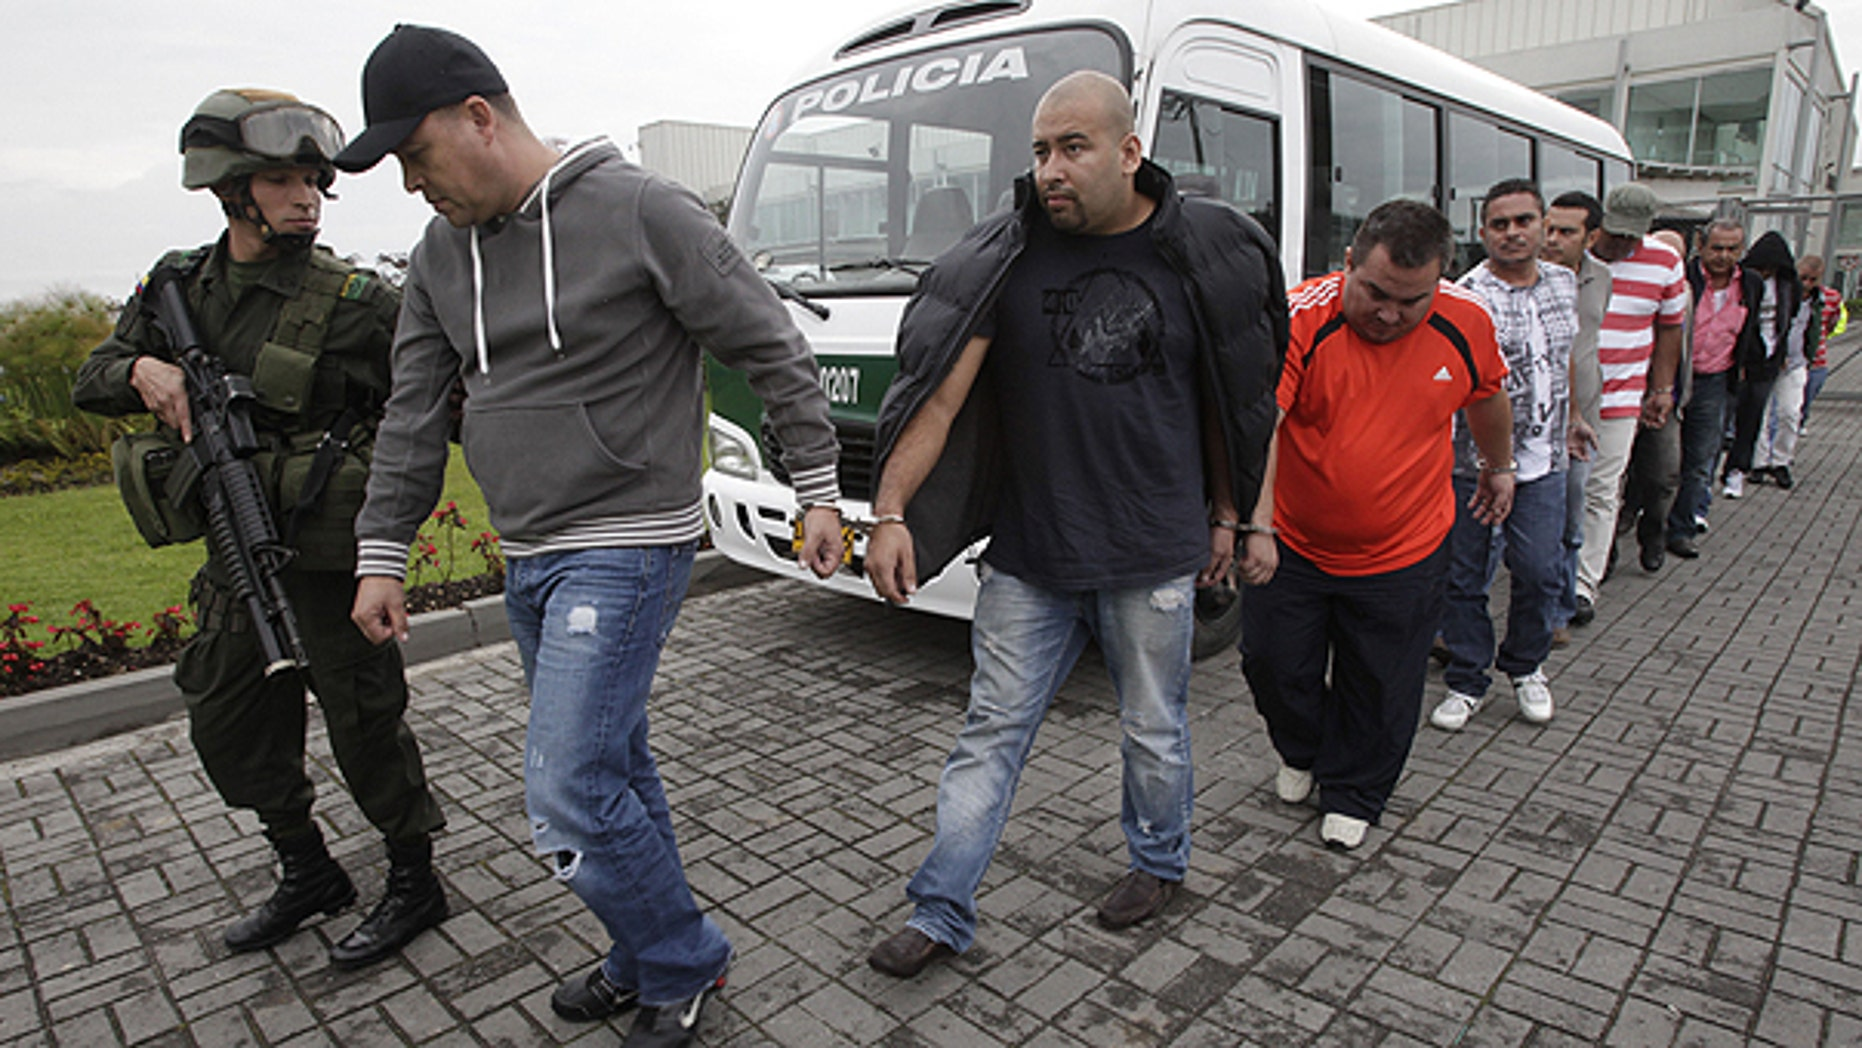 June 2: Police officers escort alleged drug traffickers at a police station in Bogota. After a five year joint investigation that began in Boston, between the Colombian and Italian police as well as the U.S. Drug Enforcement Administration, DEA, a total of twenty men, twelve in Colombia, were arrested for allegedly conspiring to smuggle cocaine and heroin, police said.